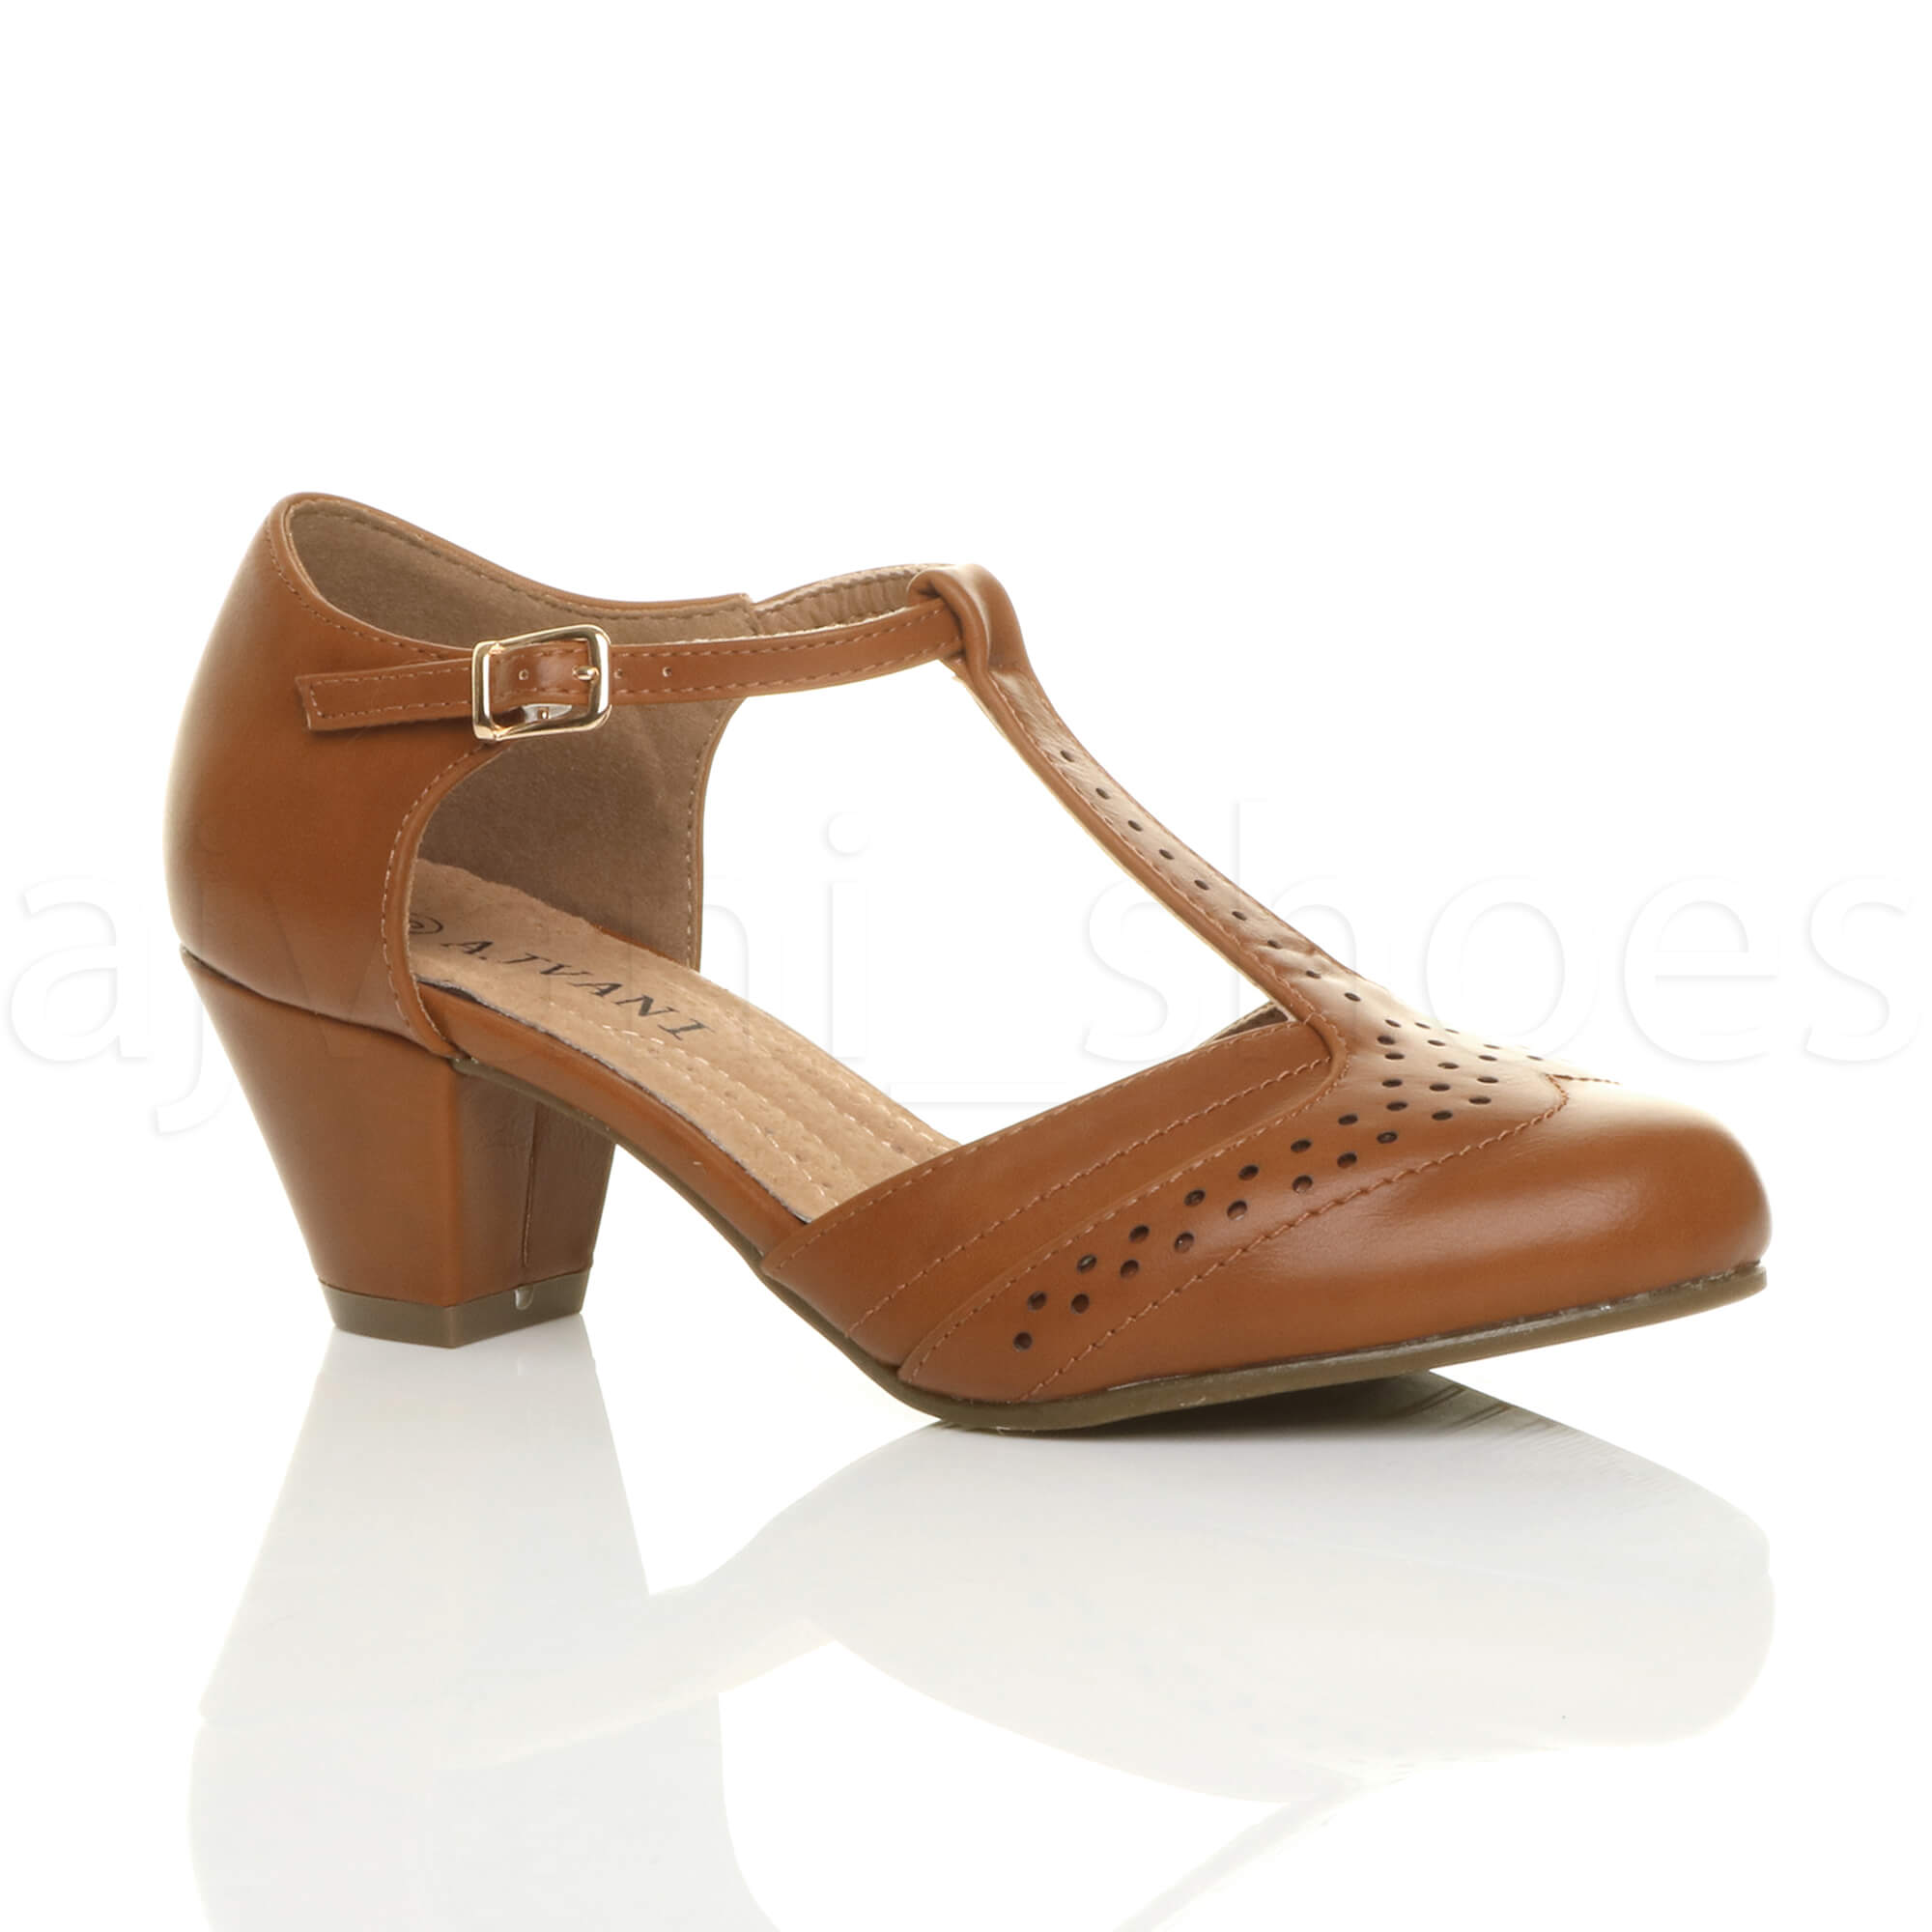 WOMENS-LADIES-MID-BLOCK-HEEL-T-BAR-CUT-OUT-BROGUE-COURT-SHOES-SANDALS-SIZE